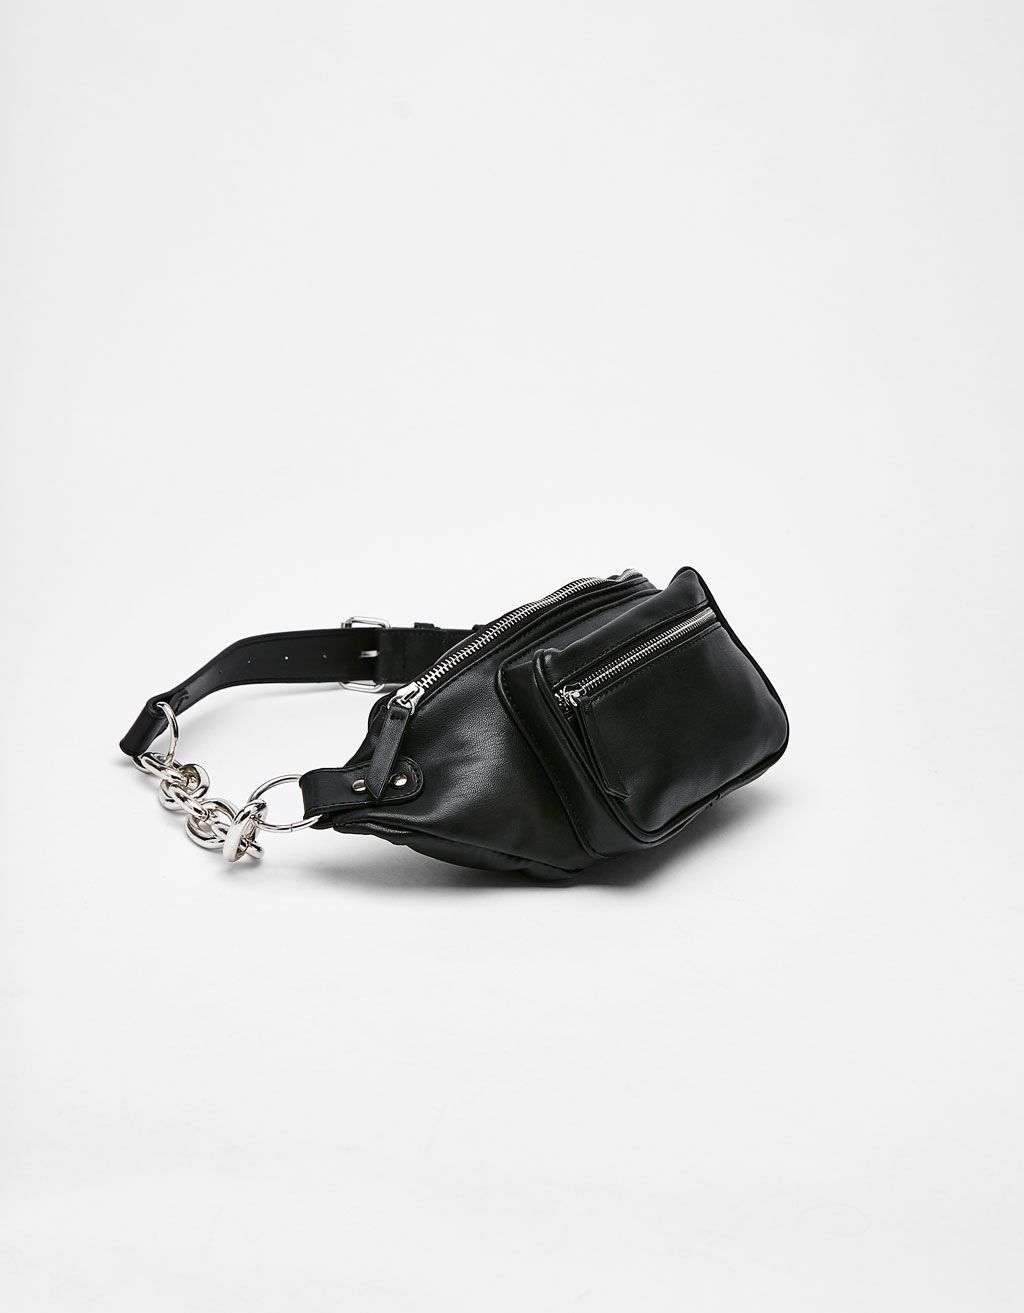 e6f2a1585c5 Fanny pack with chain | Athleisure | Bags, Cute bags, Fanny Pack